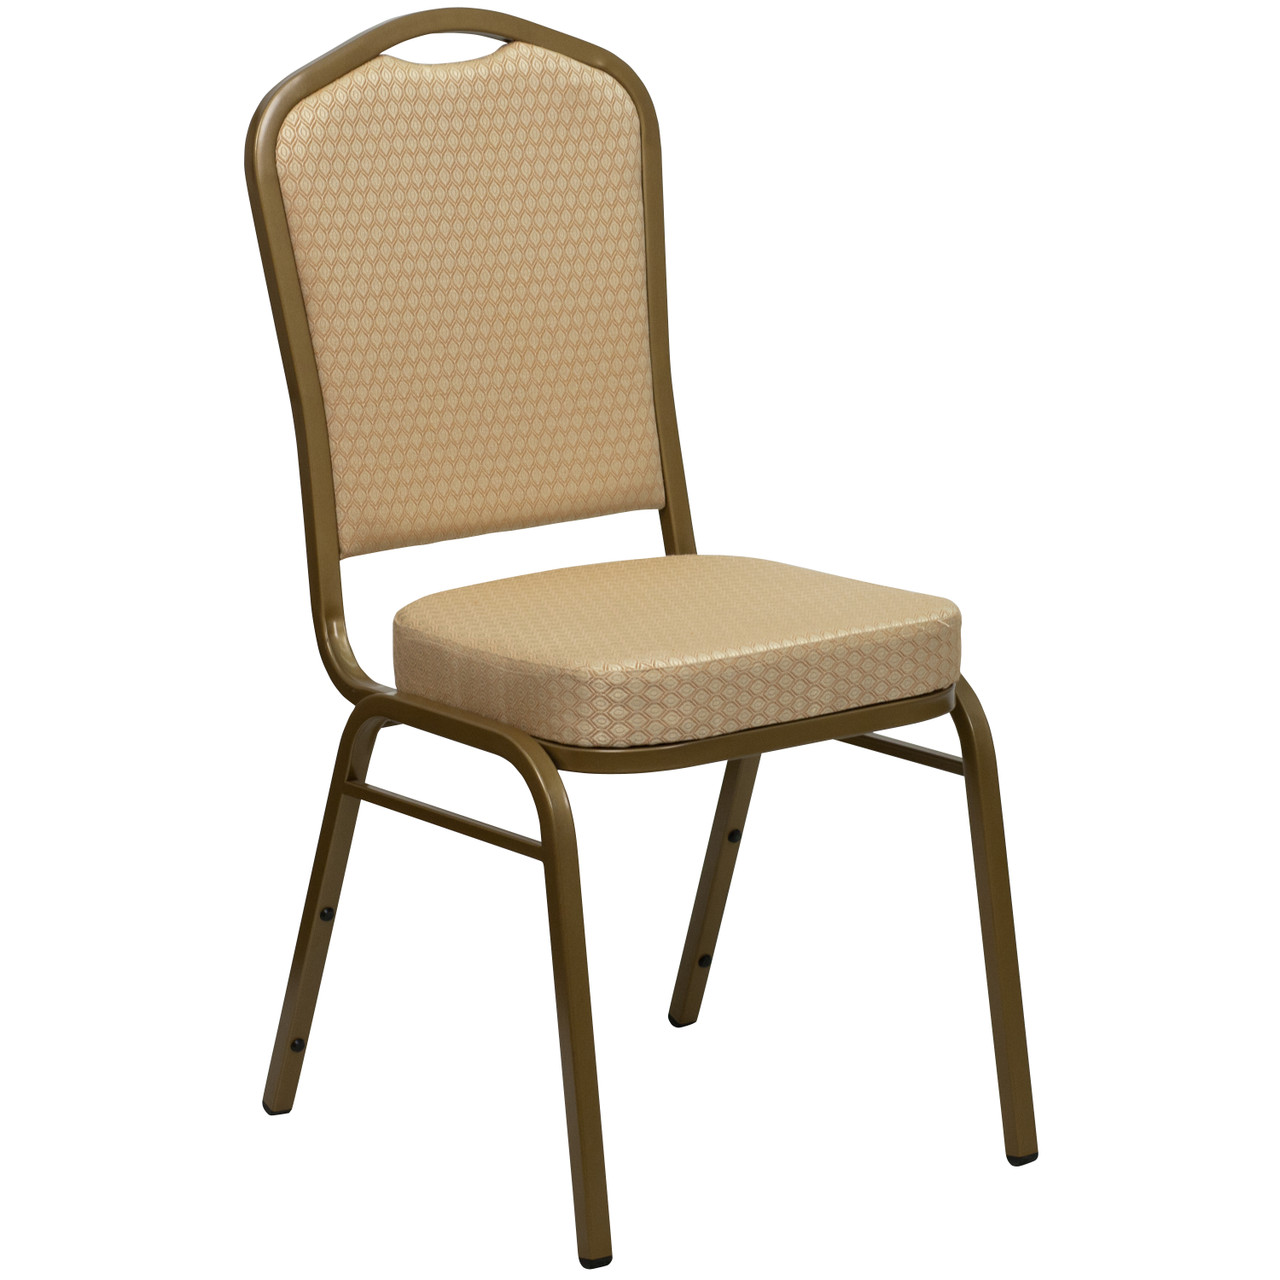 Crown Back Stacking Banquet Chair In Beige Patterned Fabric Gold Frame Fd C01 Allgold H20124e Gg